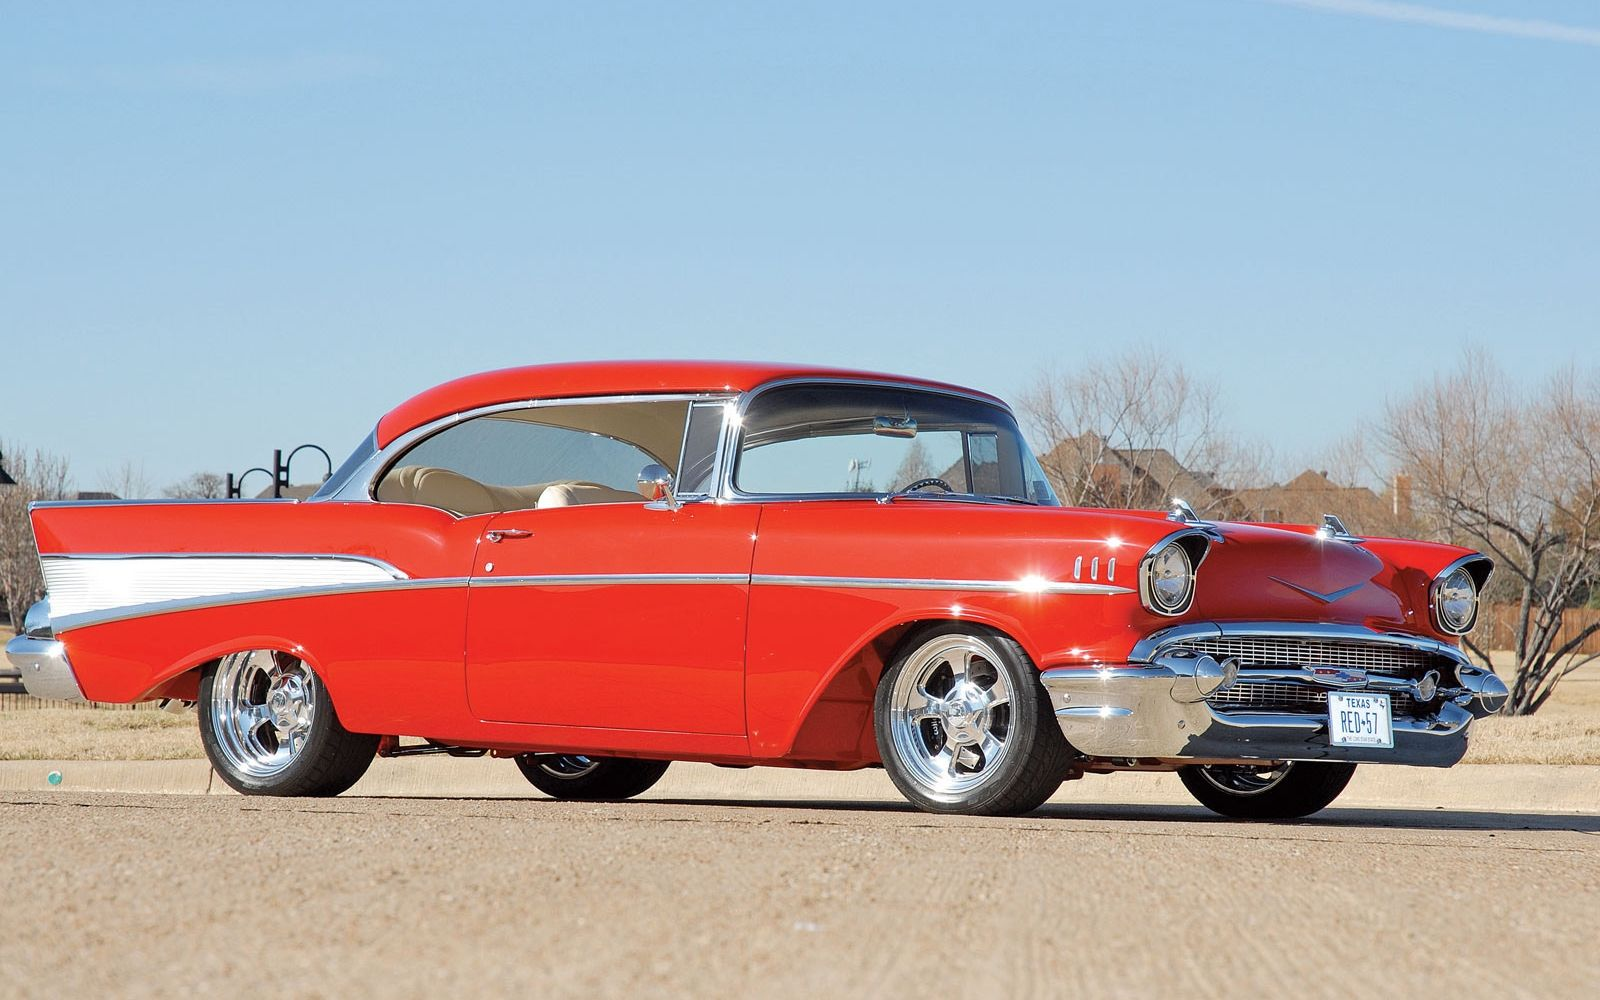 57 Chevy Wallpaper Red 57 57 Chevy Cars Chevrolet Chevy